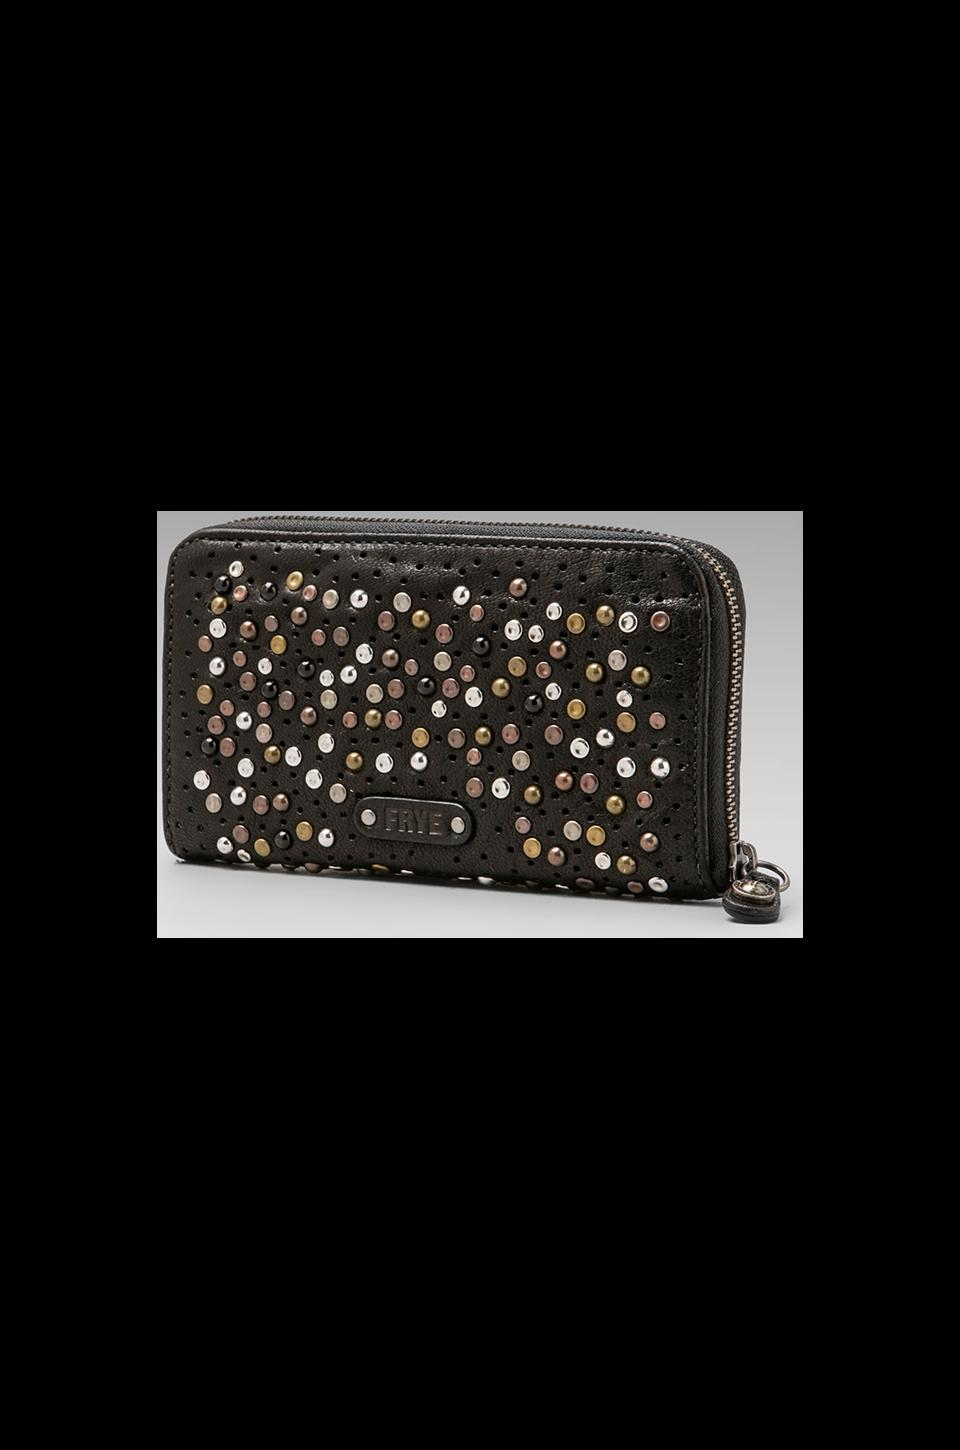 Frye Deborah Wallet in Black